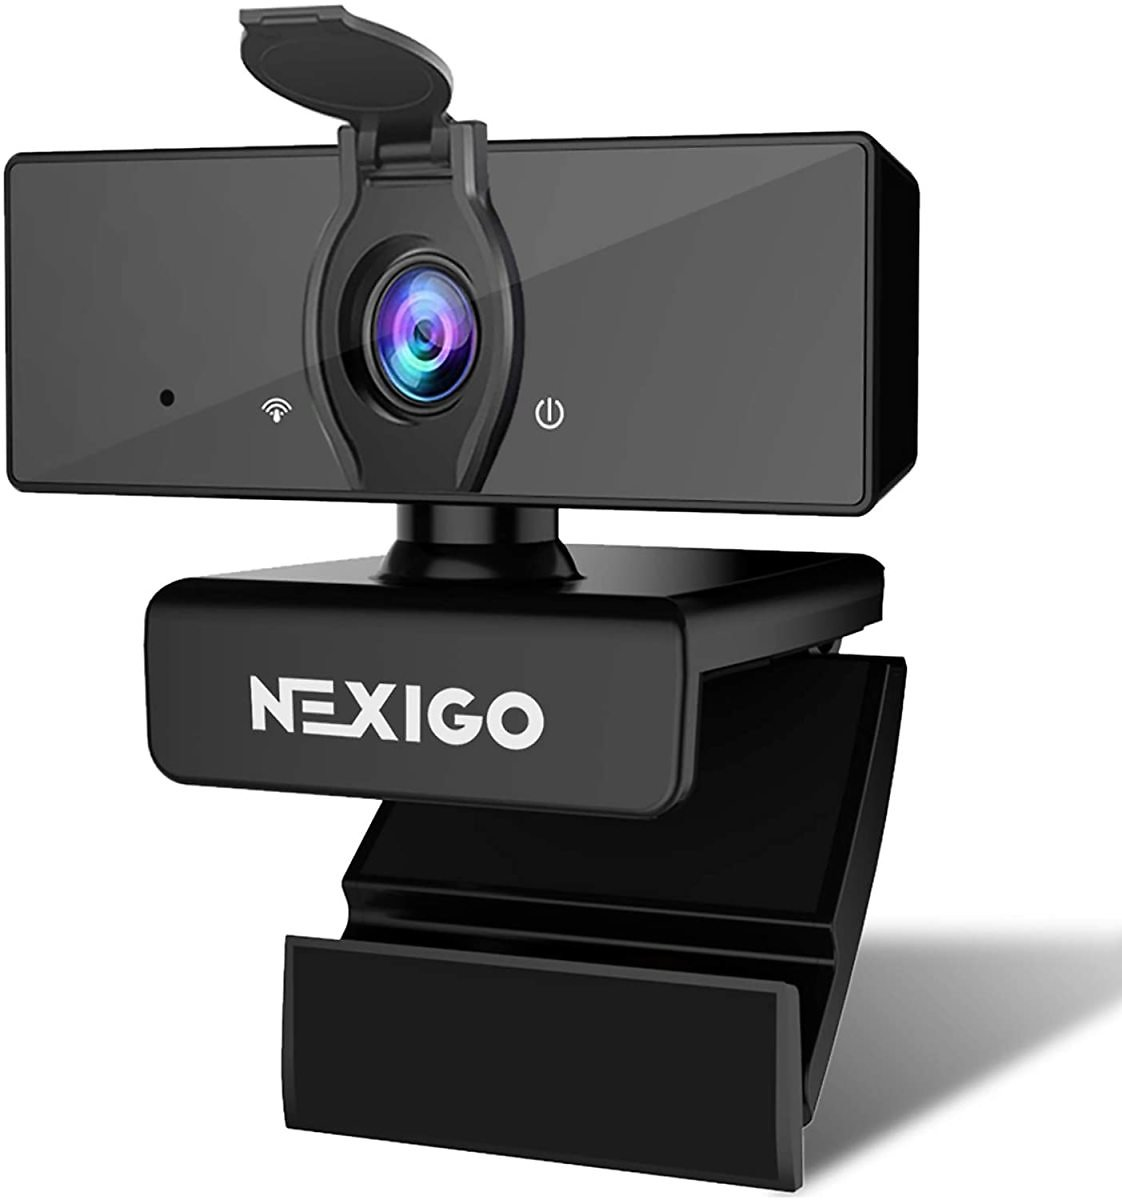 1080P Business Webcam with Dual Microphone & Privacy Cover, 2020 [Upgraded] NexiGo USB FHD Web Computer Camera, Plug and Play, for Zoom Skype MS Teams Online Teaching, Laptop MAC PC Desktop